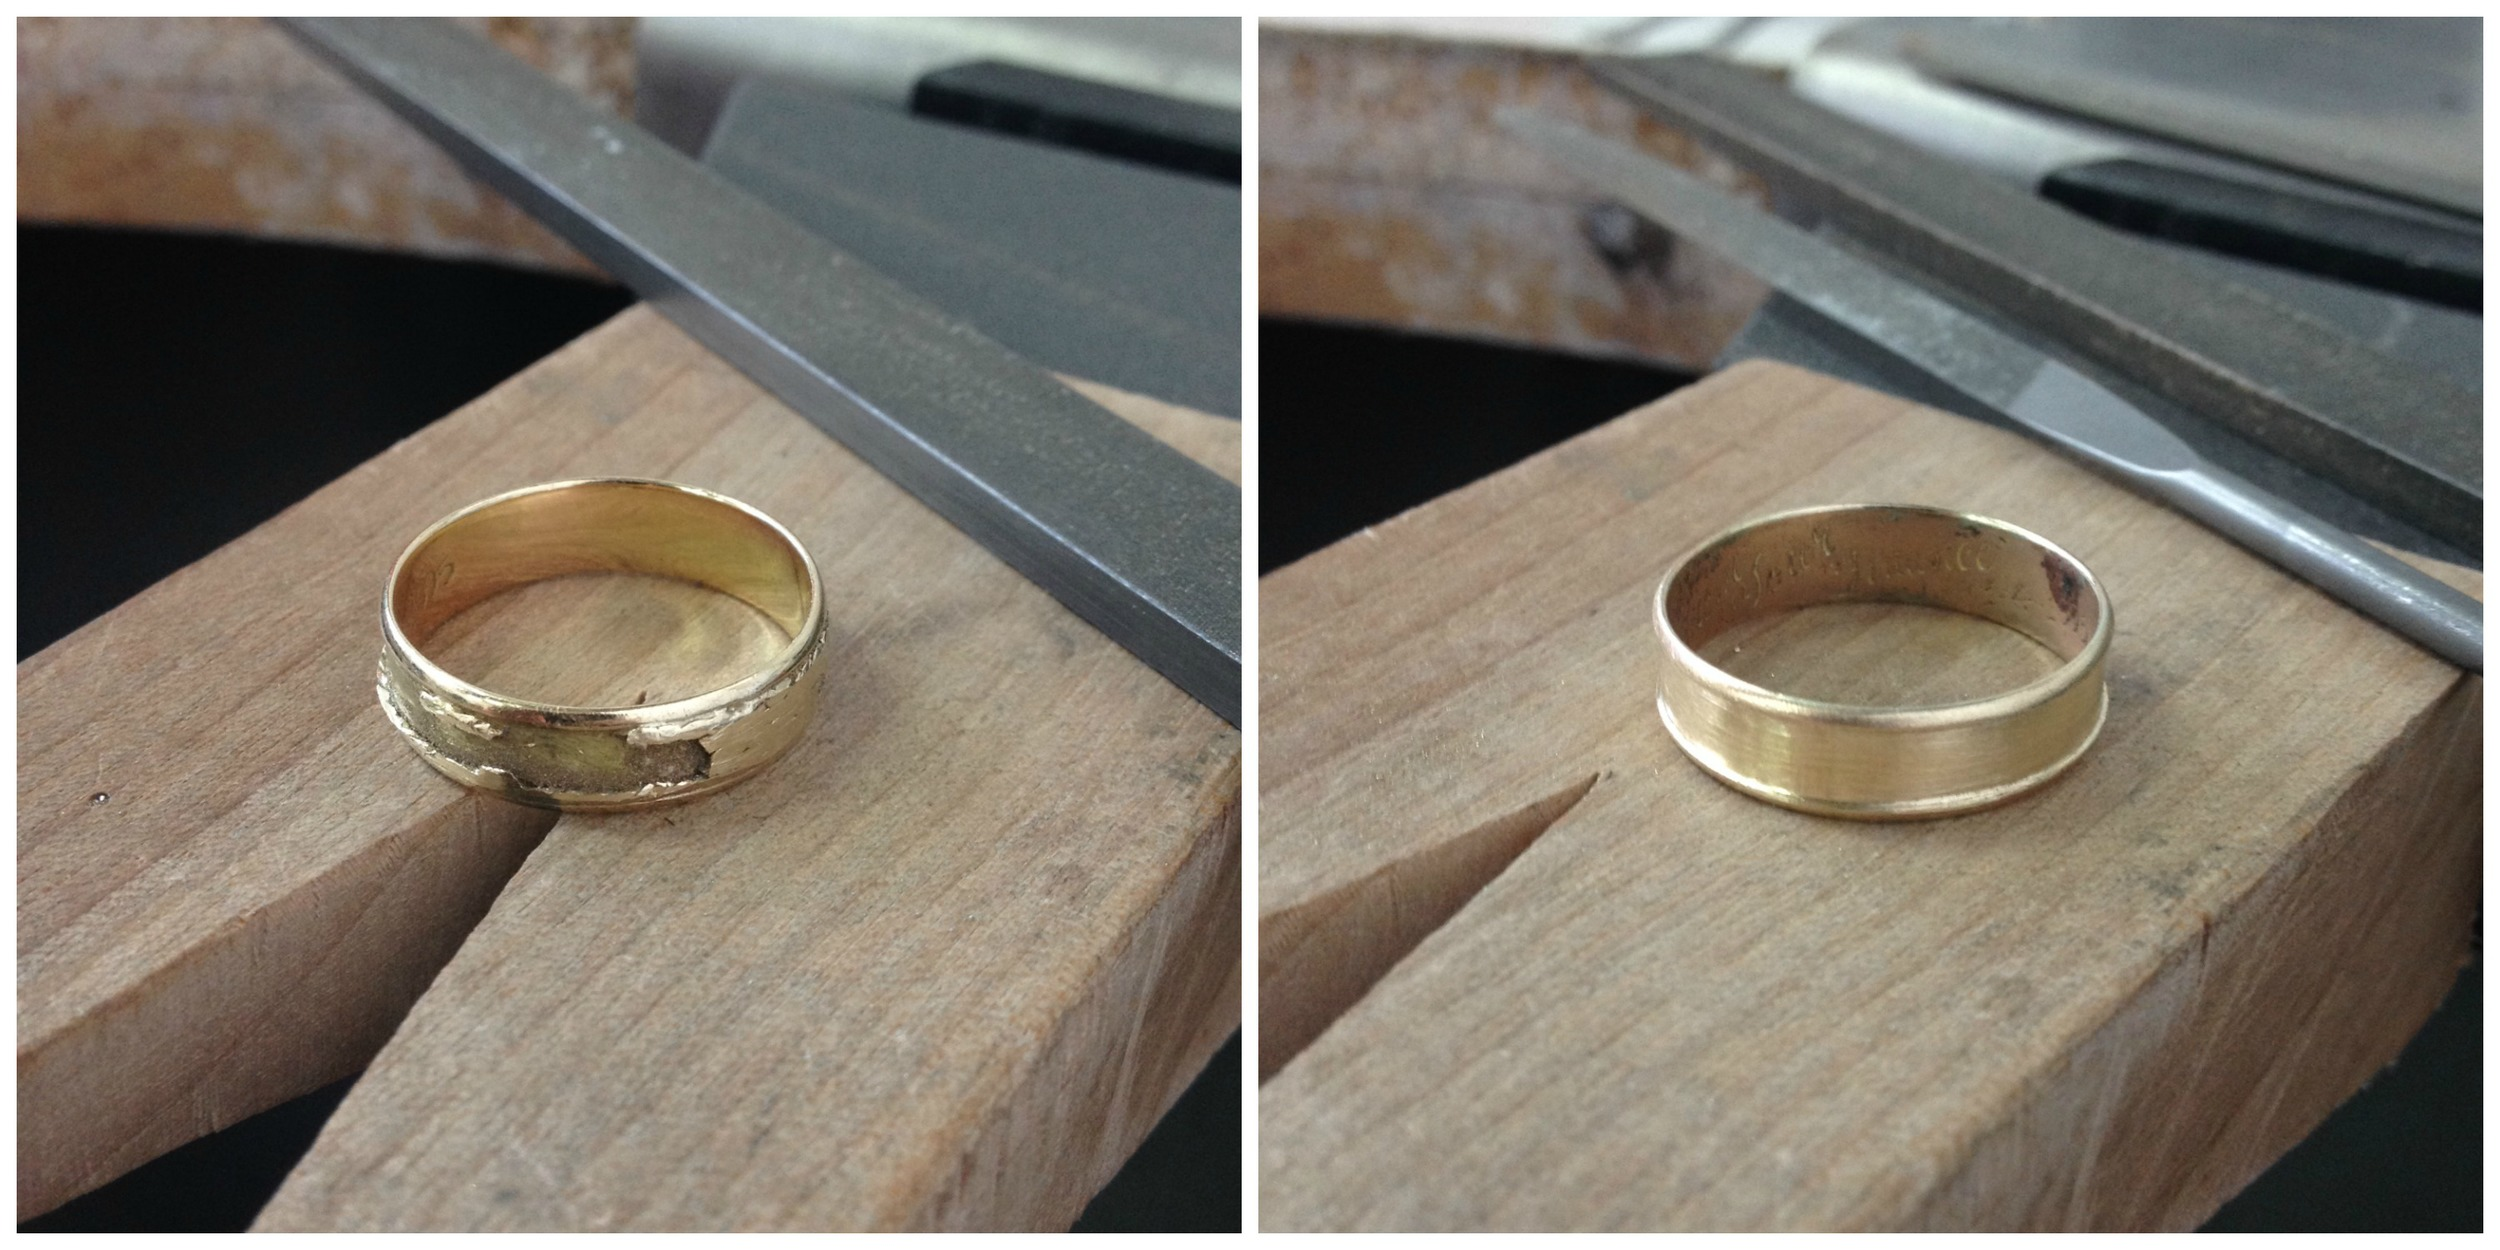 The bits that were soldered down needed to be completely filed away, leaving the very thin engraved ring underneath